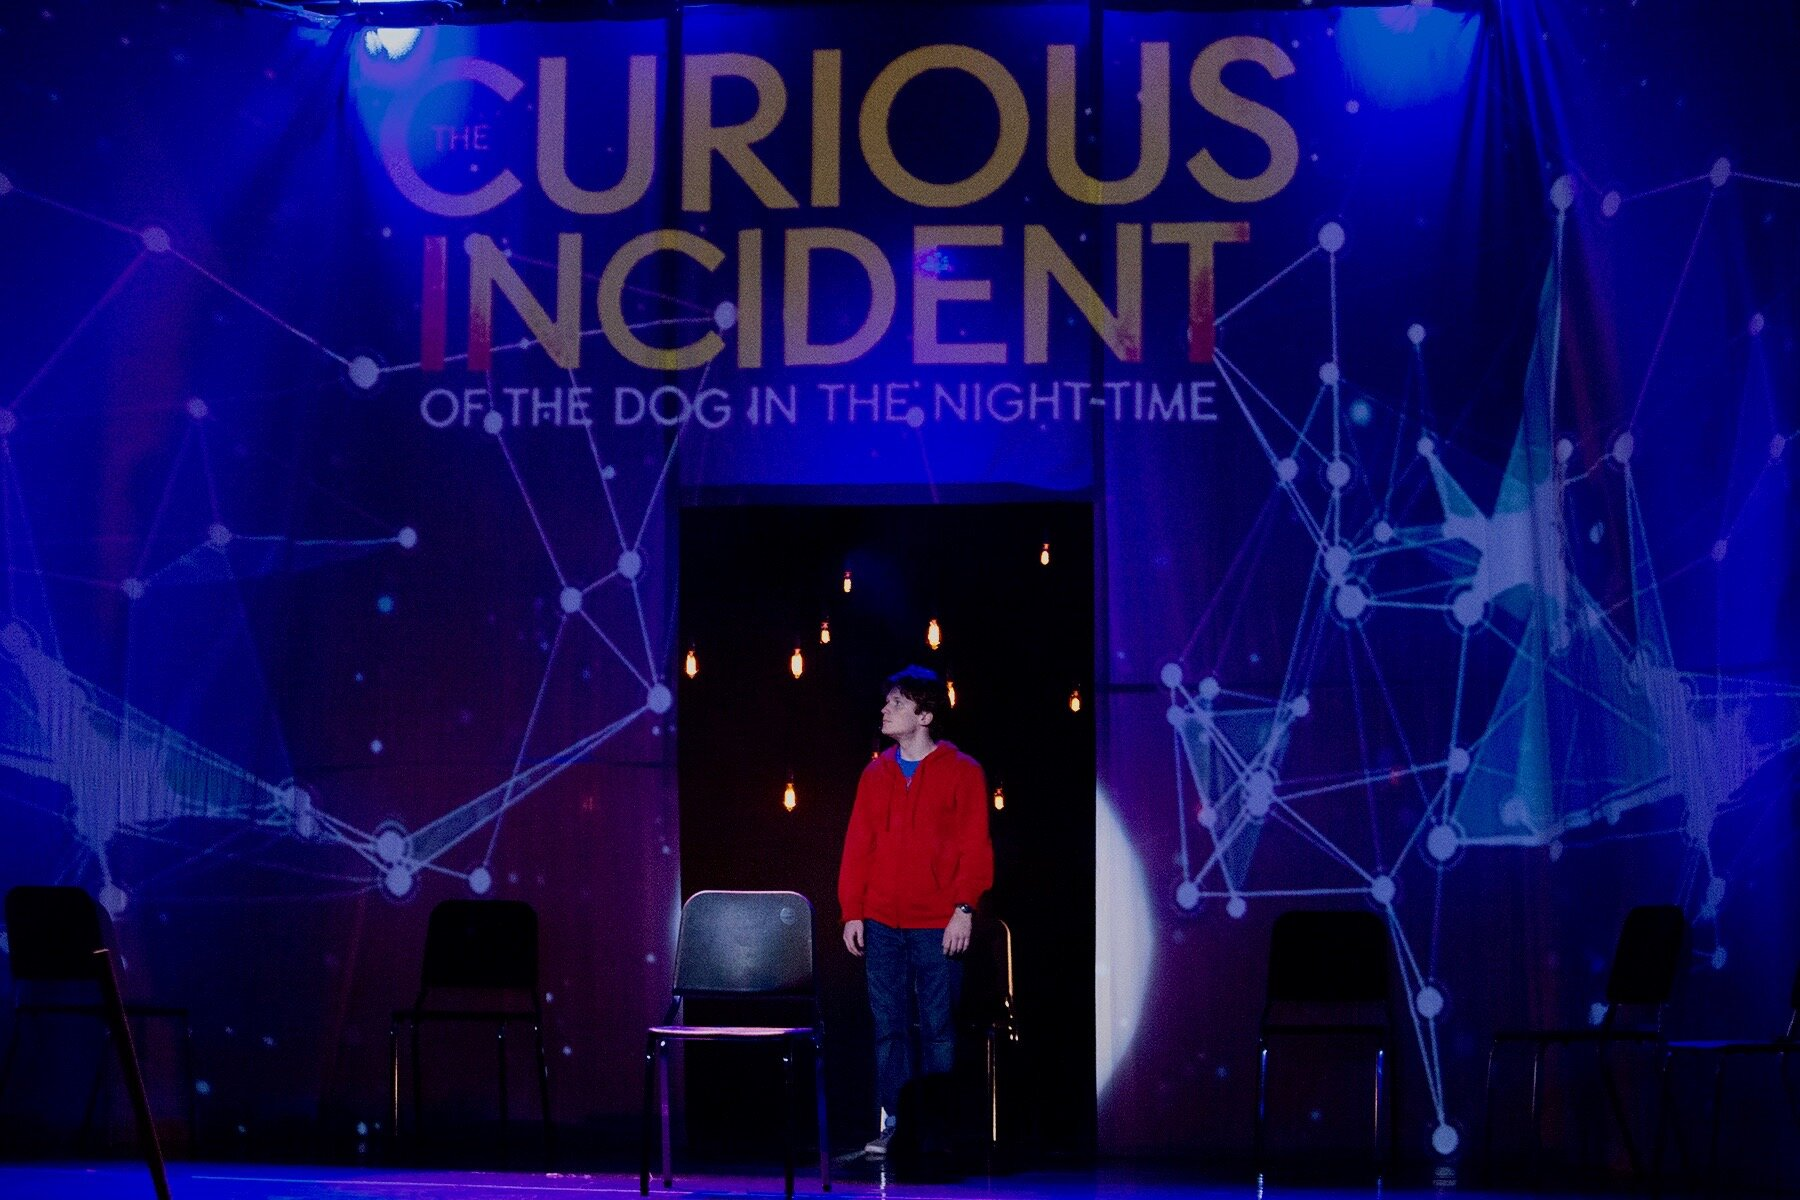 THE CURIOUS INCIDENT OF THE DOG IN THE NIGHT-TIME (2019)